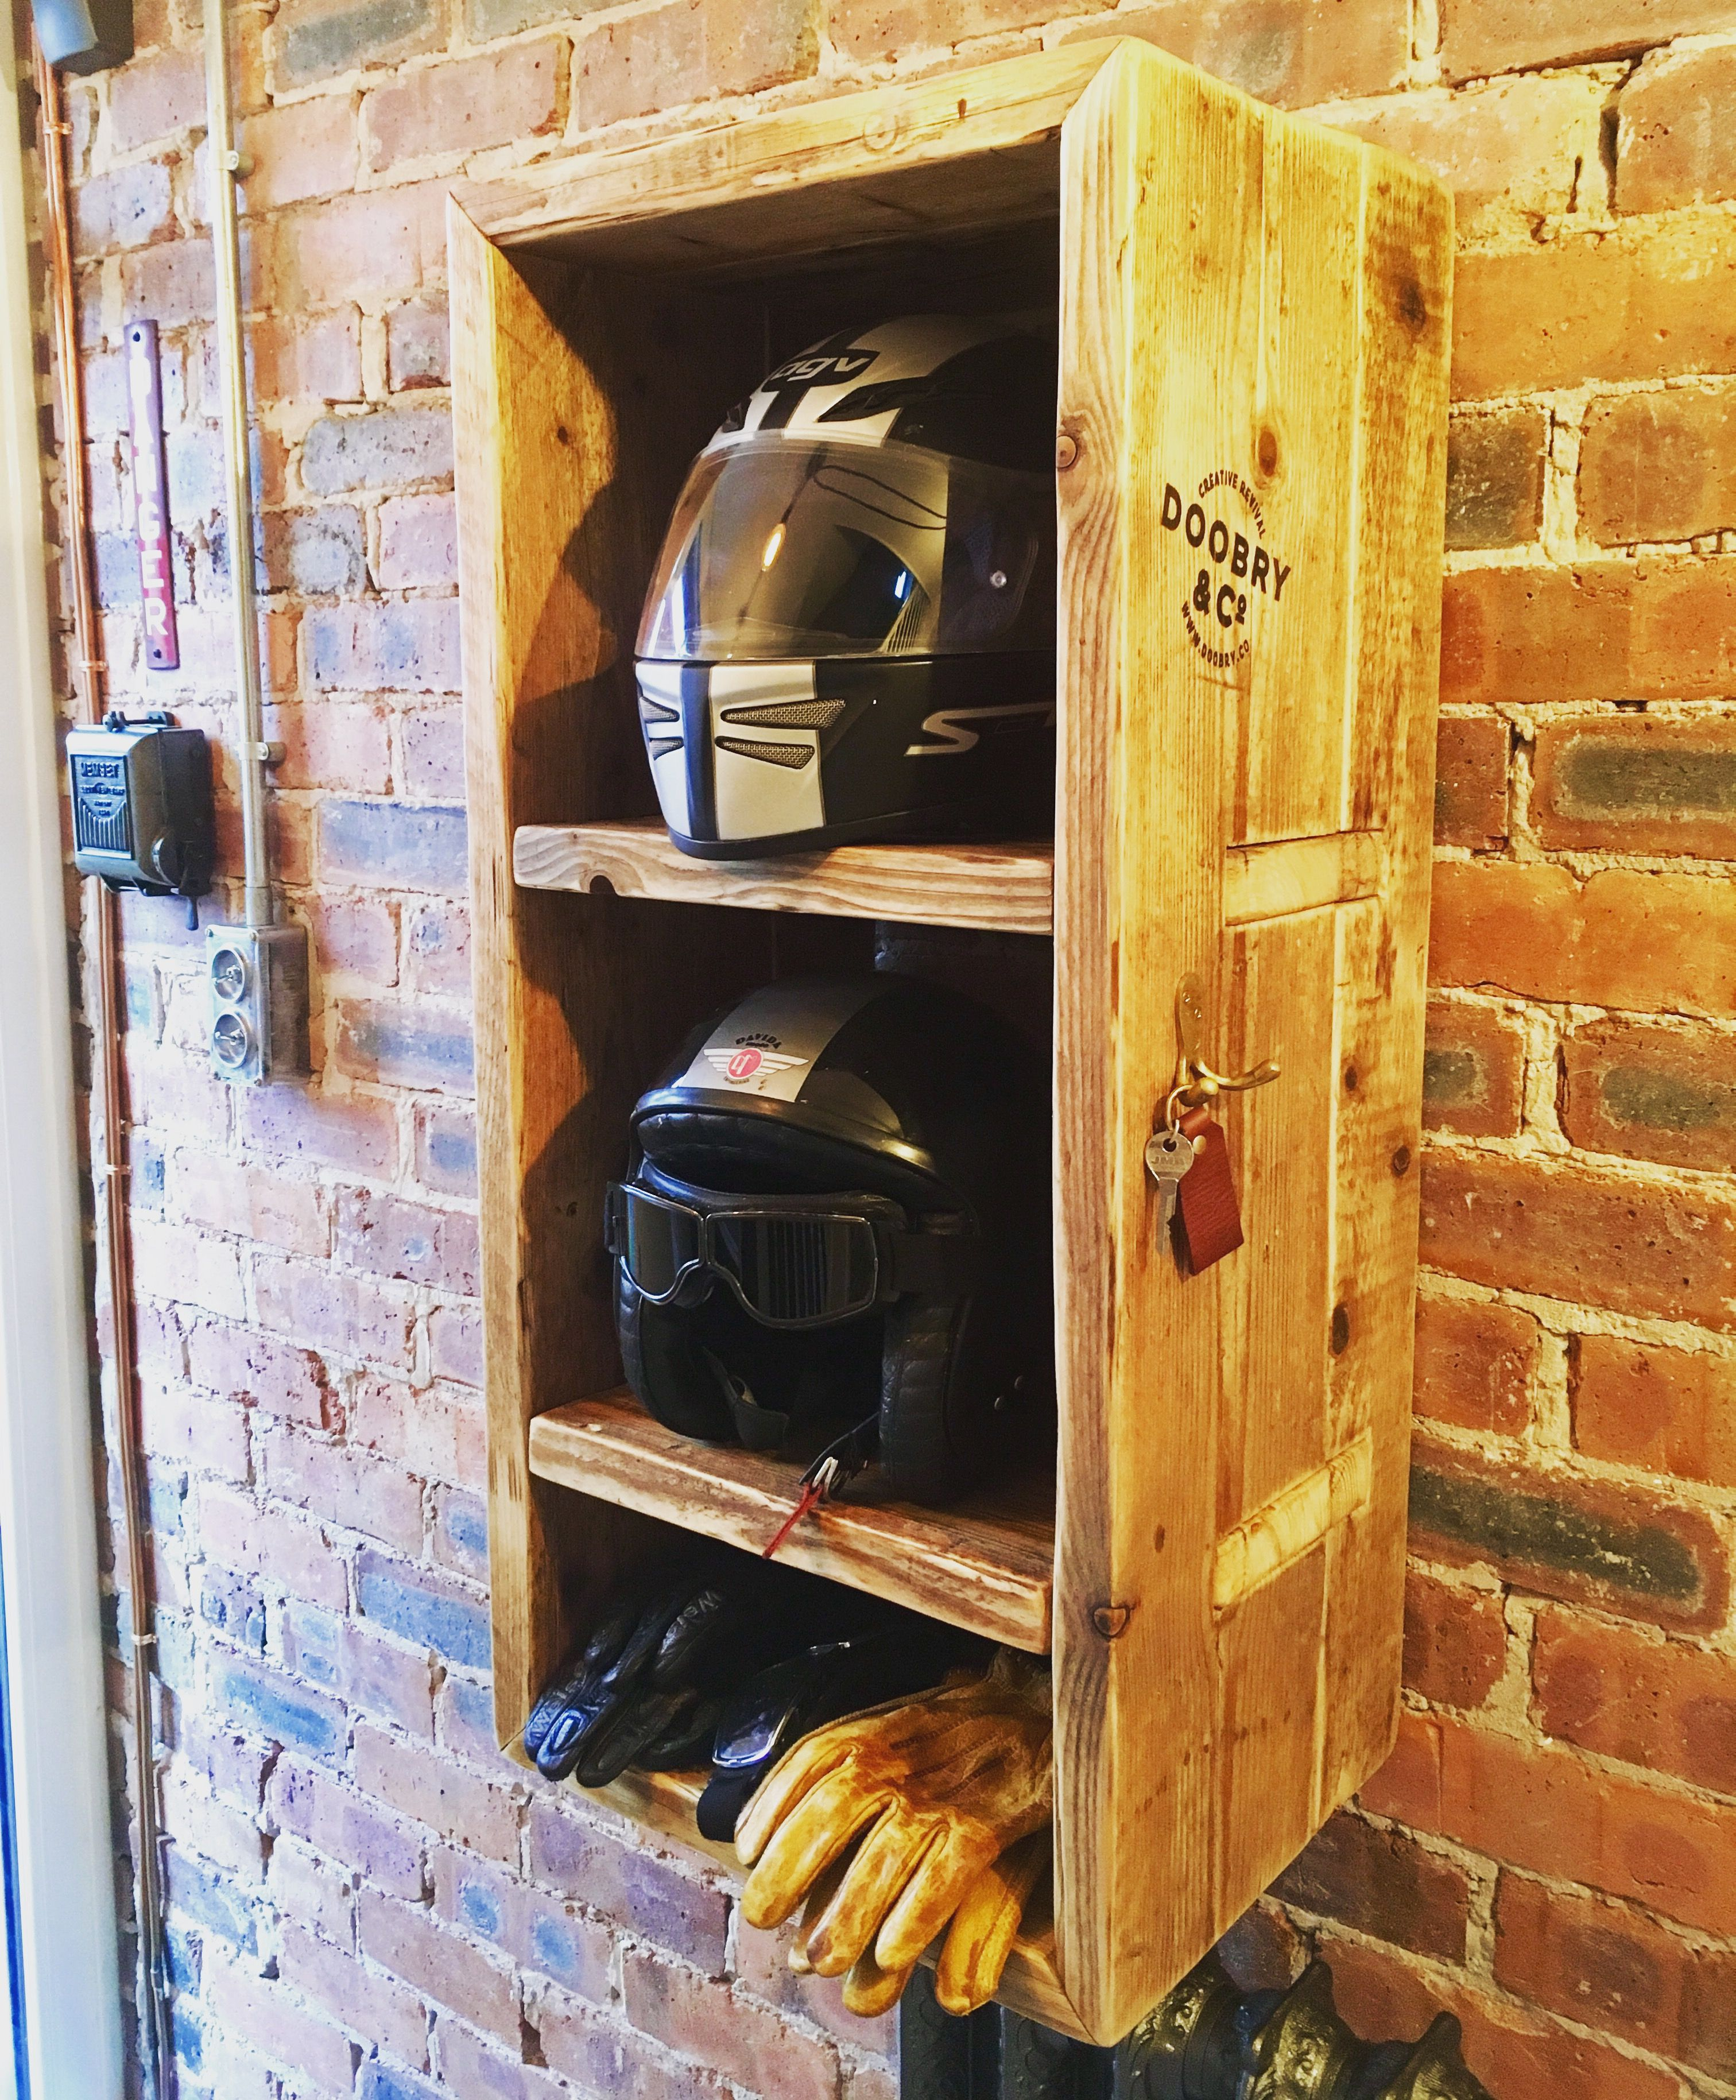 Compartments For Helmets 1 For Gloves Etc With Antique Brass Key Hooks Man Cave Garage Bike Garage Decor Motorcycle Diy Helmet Storage